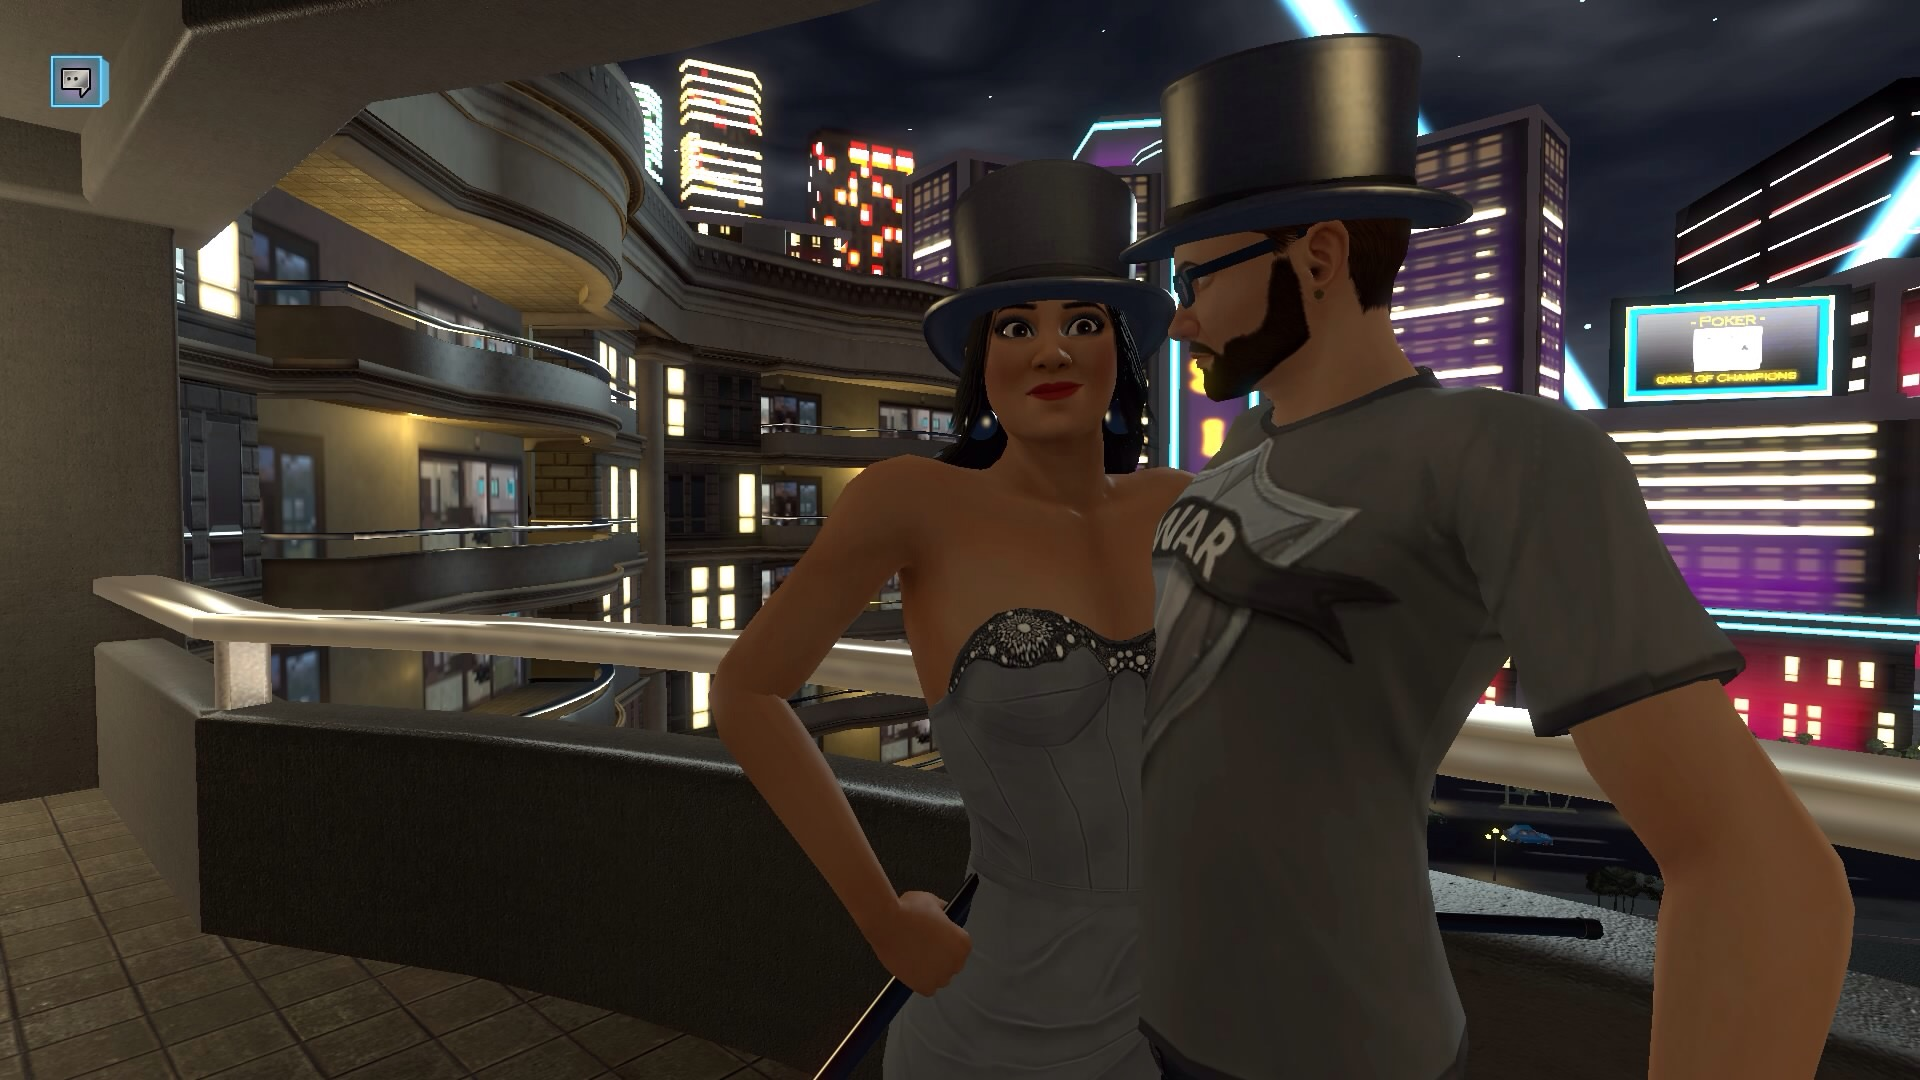 WIN 1,200,000 in Four Kings Casino Chips for PS4!, C4Fury, Dec 23, 2015, 9:47 AM, YourPSHome.net, jpeg, image.jpeg